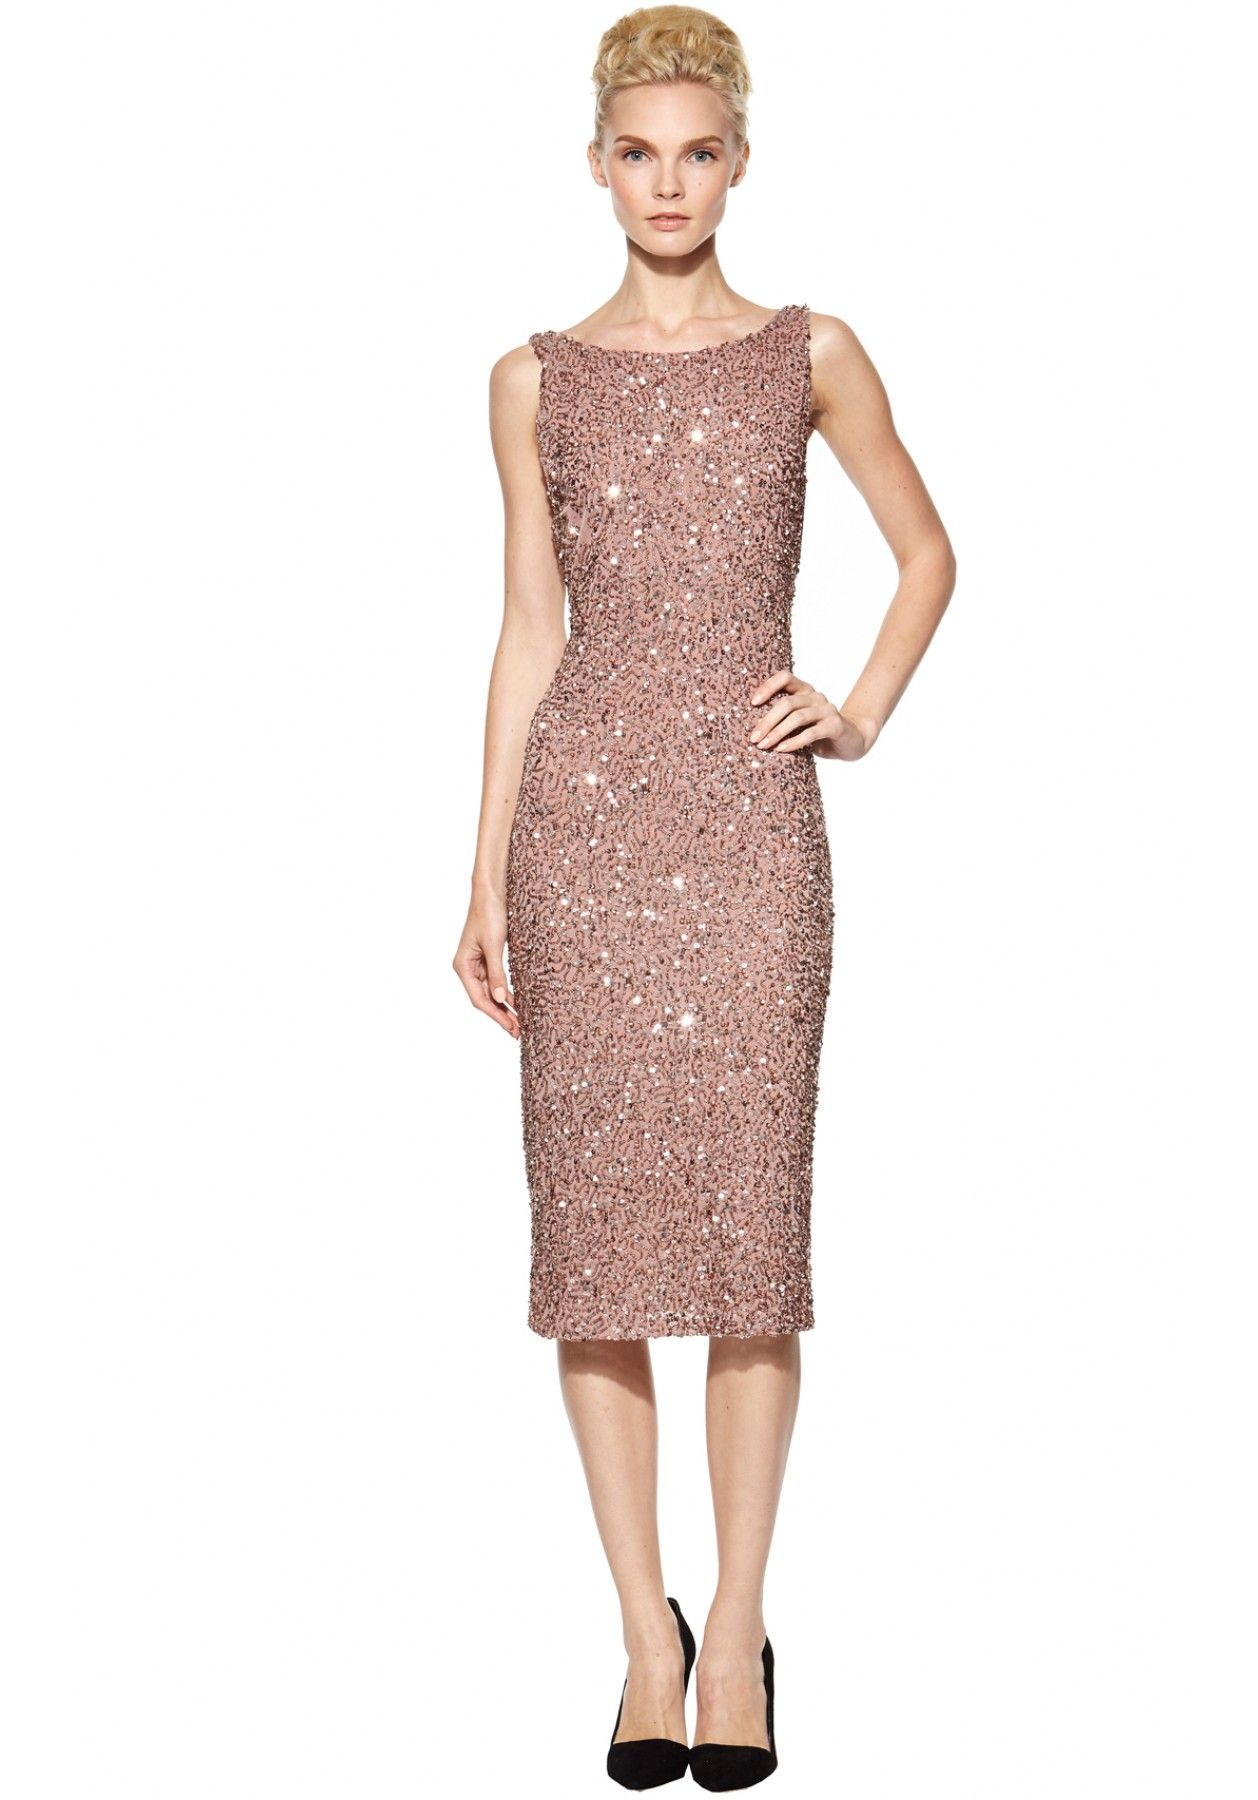 KIMBER EMBELLISHED FITTED DRESS | Wedding ideas for my sister ...